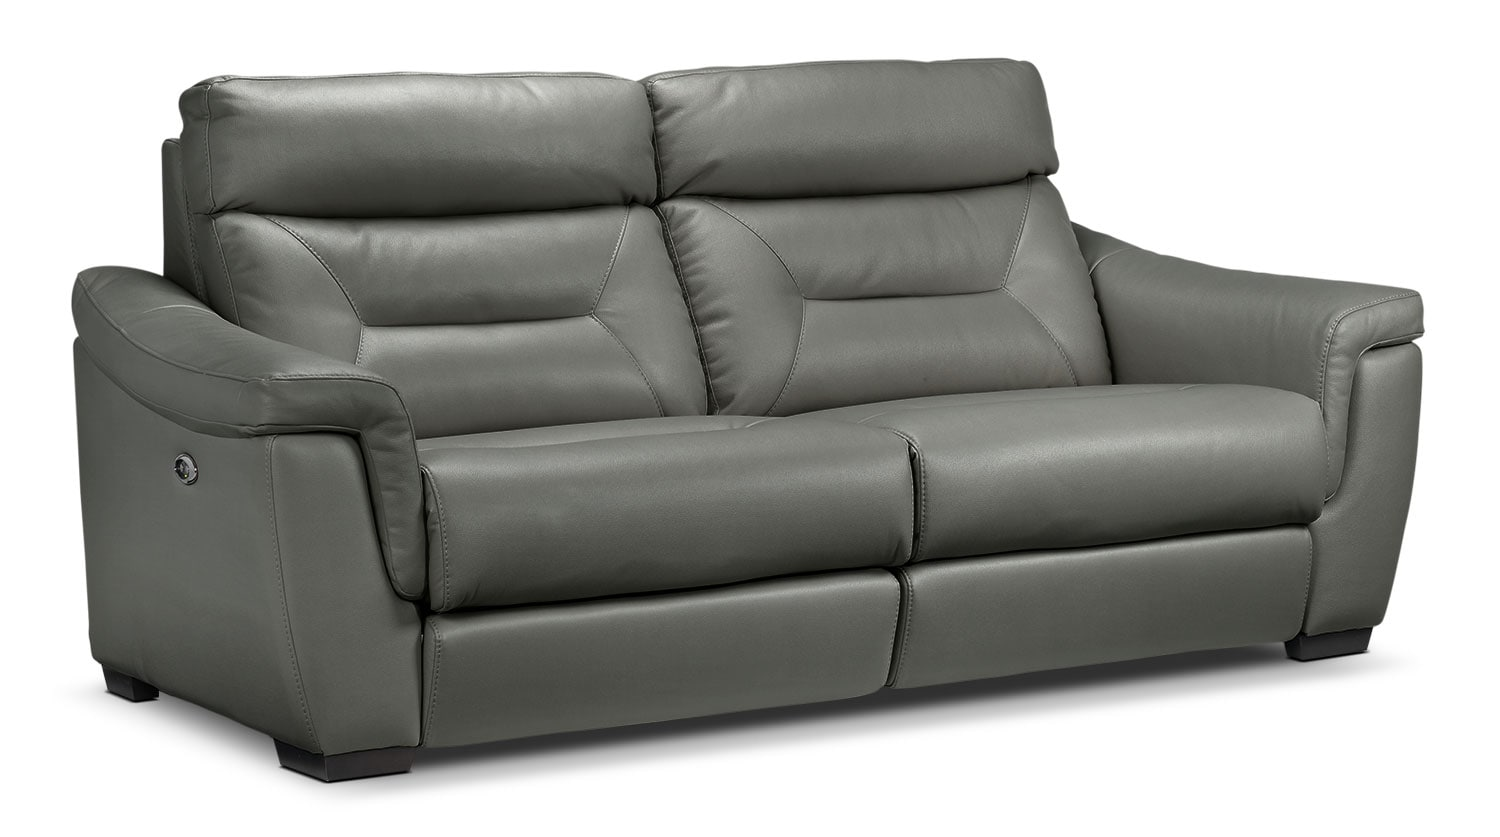 Living Room Furniture - Ralston Power Reclining Sofa - Graphite